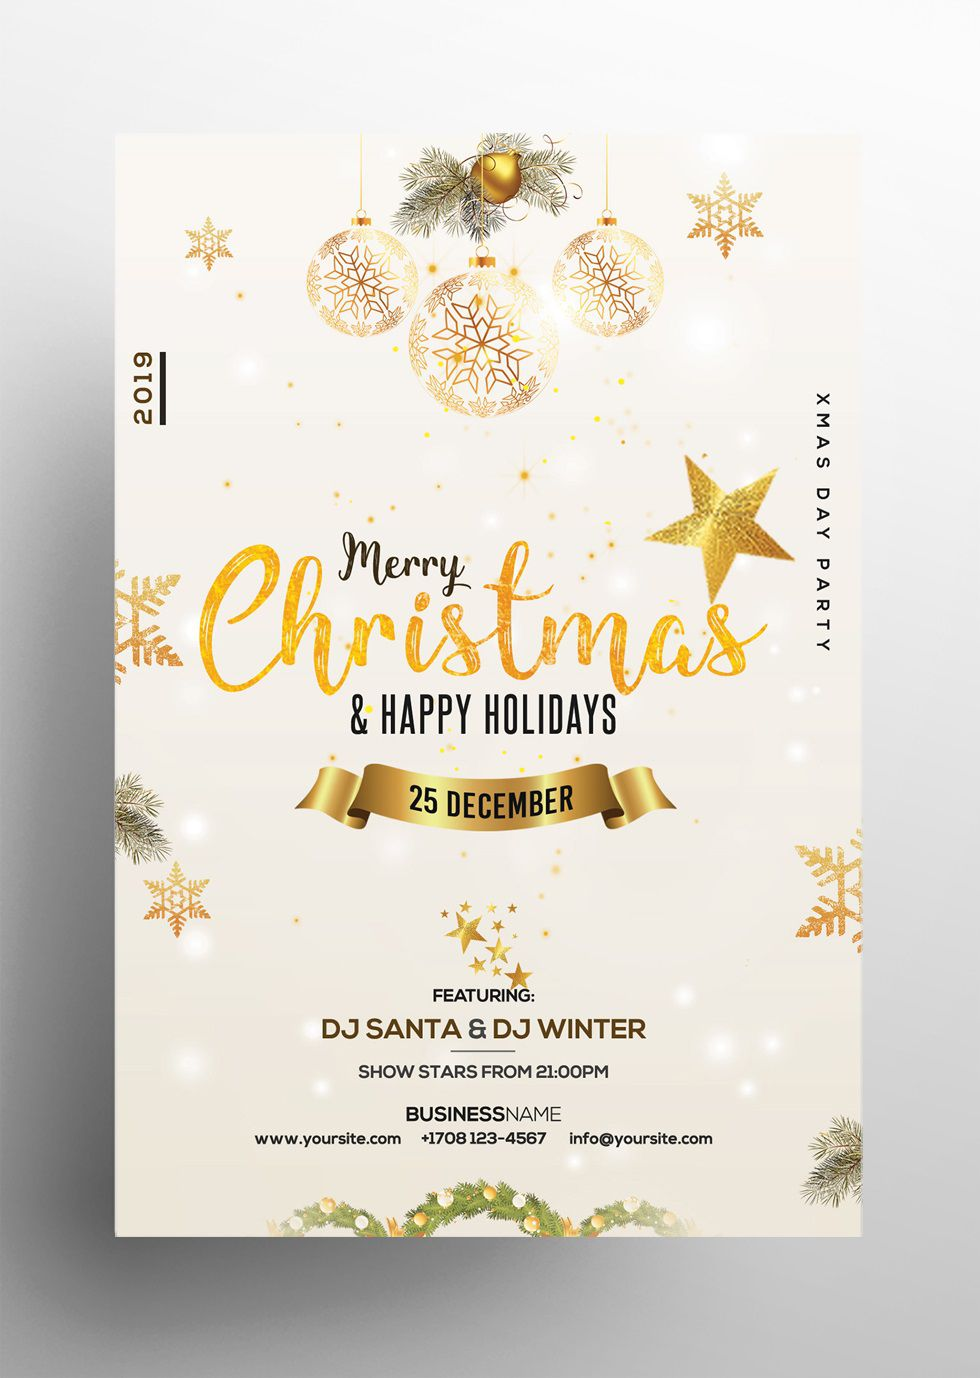 005 Dreaded Free Holiday Flyer Template Image  Printable Christma Word Sale PartyFull